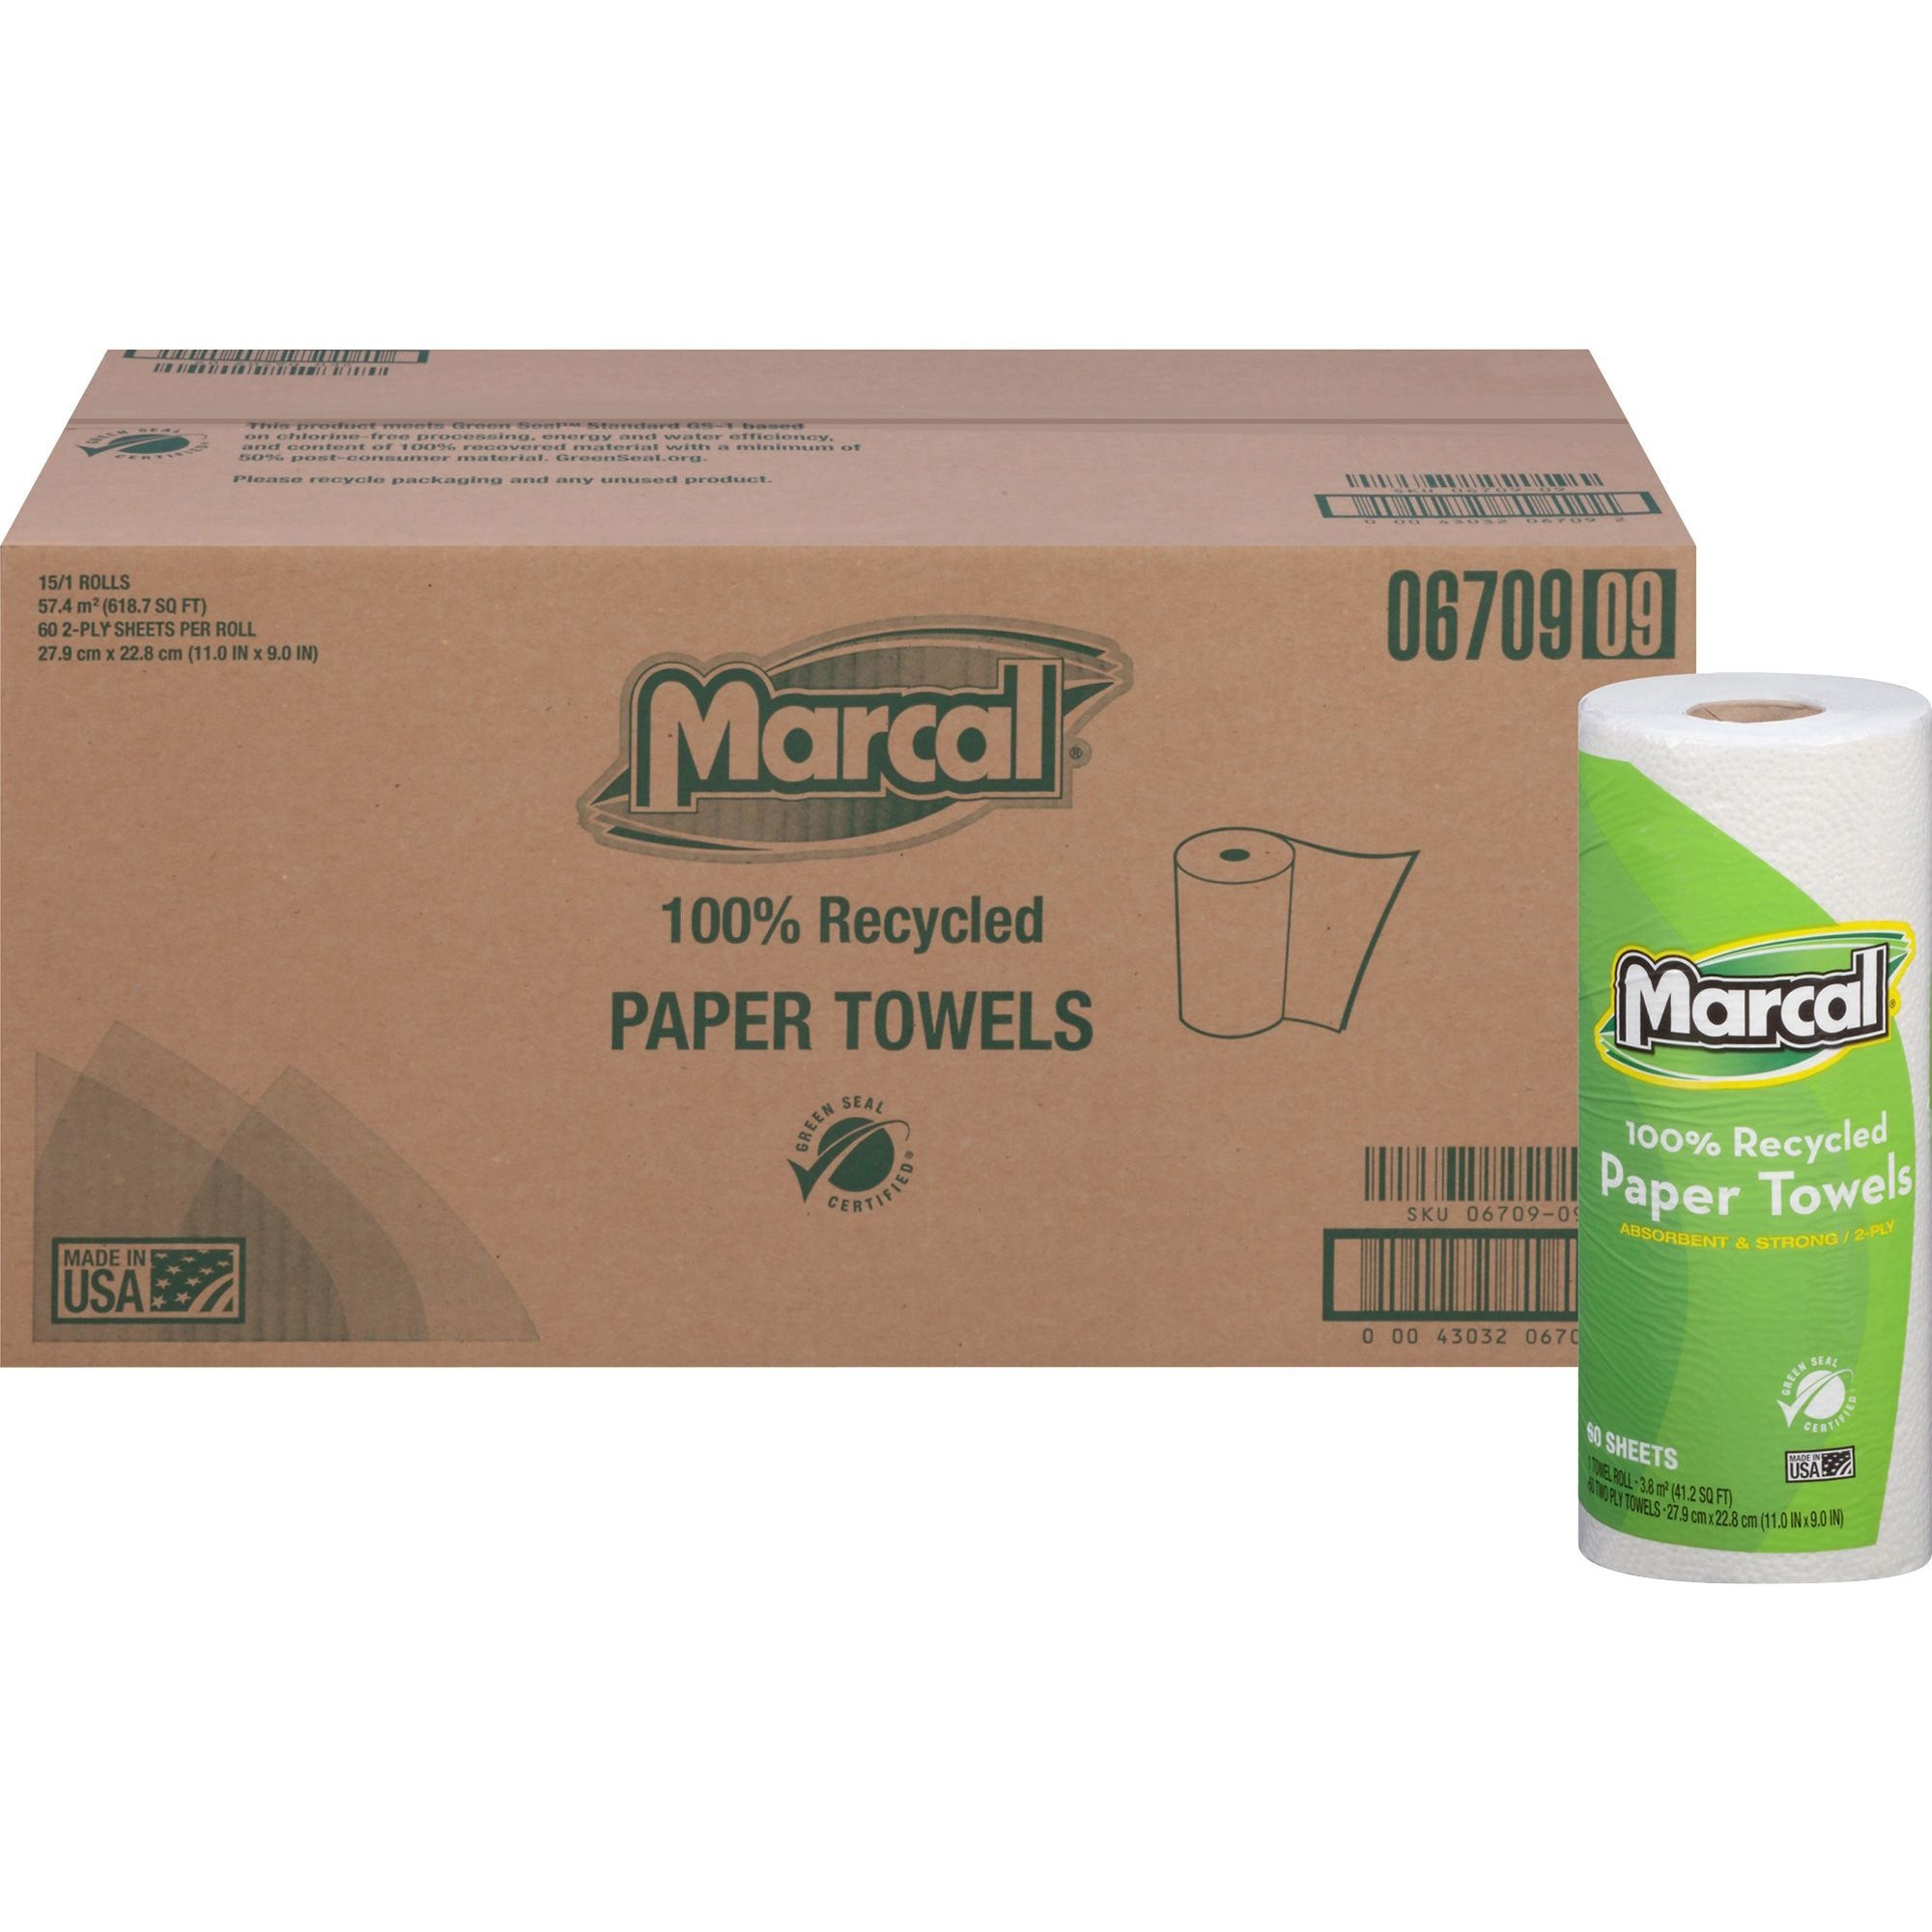 Marcal, MRC6709, 100% Recycled, Paper Towels, 15 / Carton, White